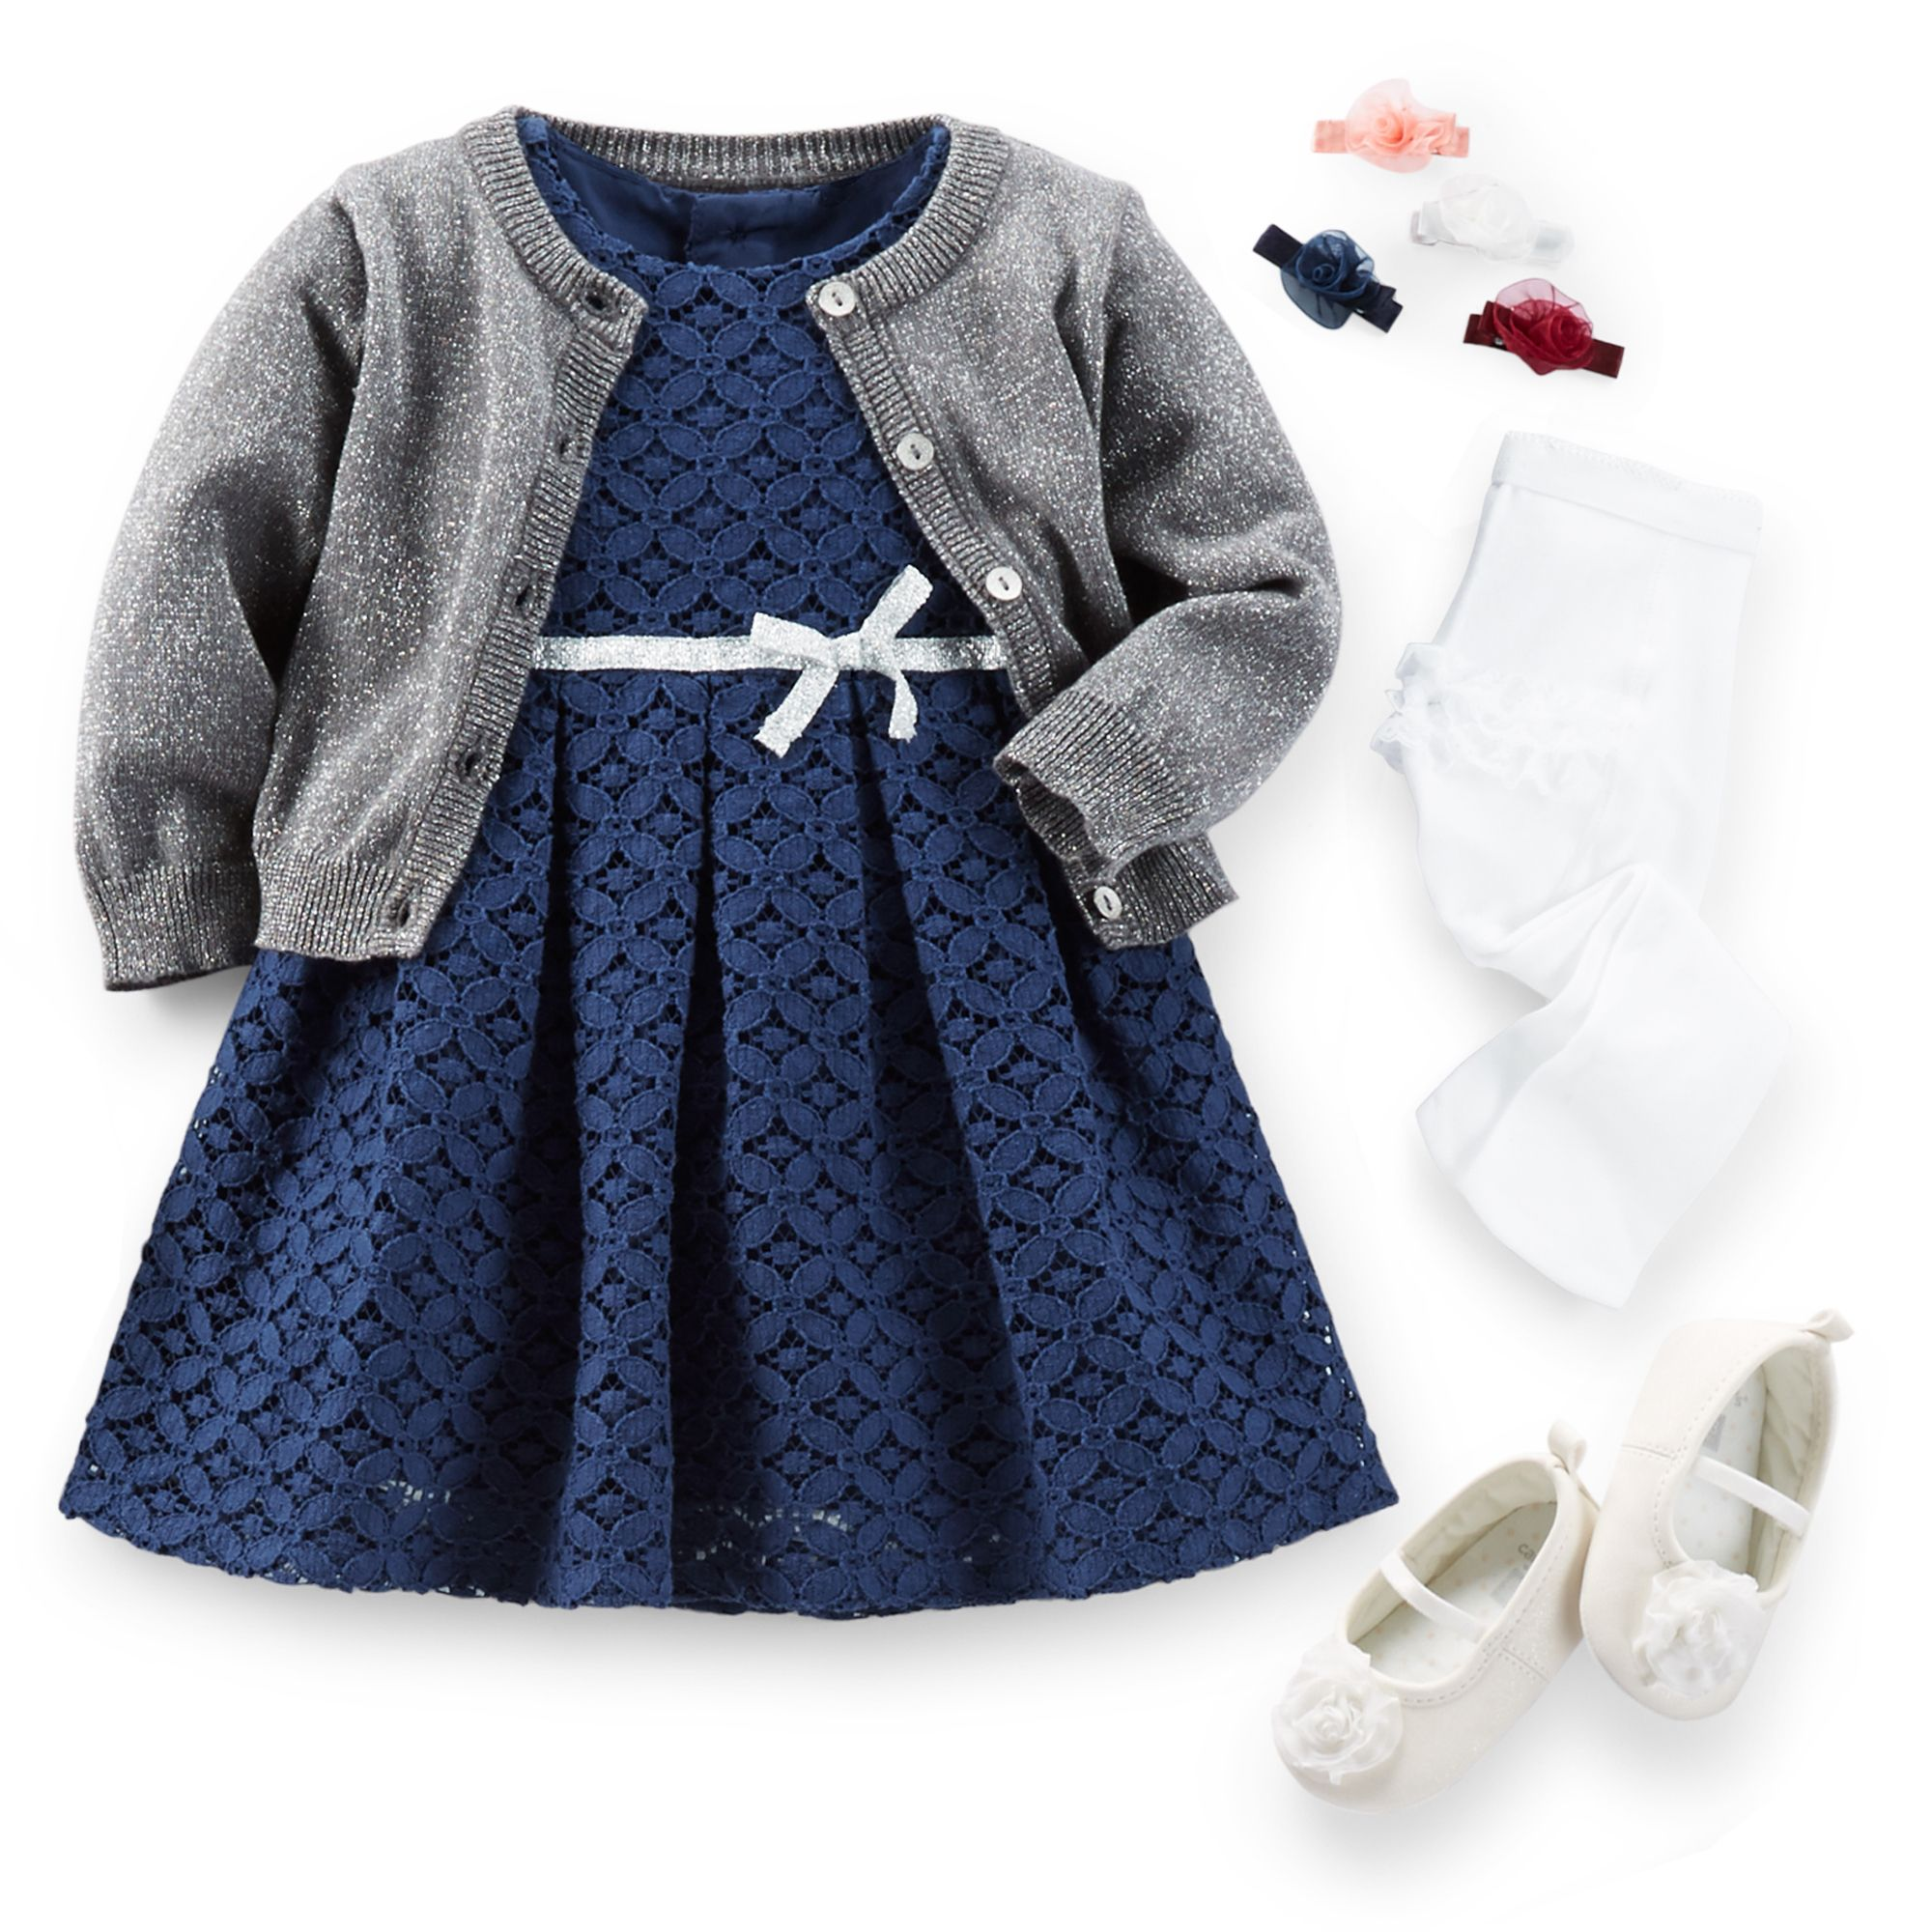 Silver Belle Classic navy lace dress looks perfect with a shimmery